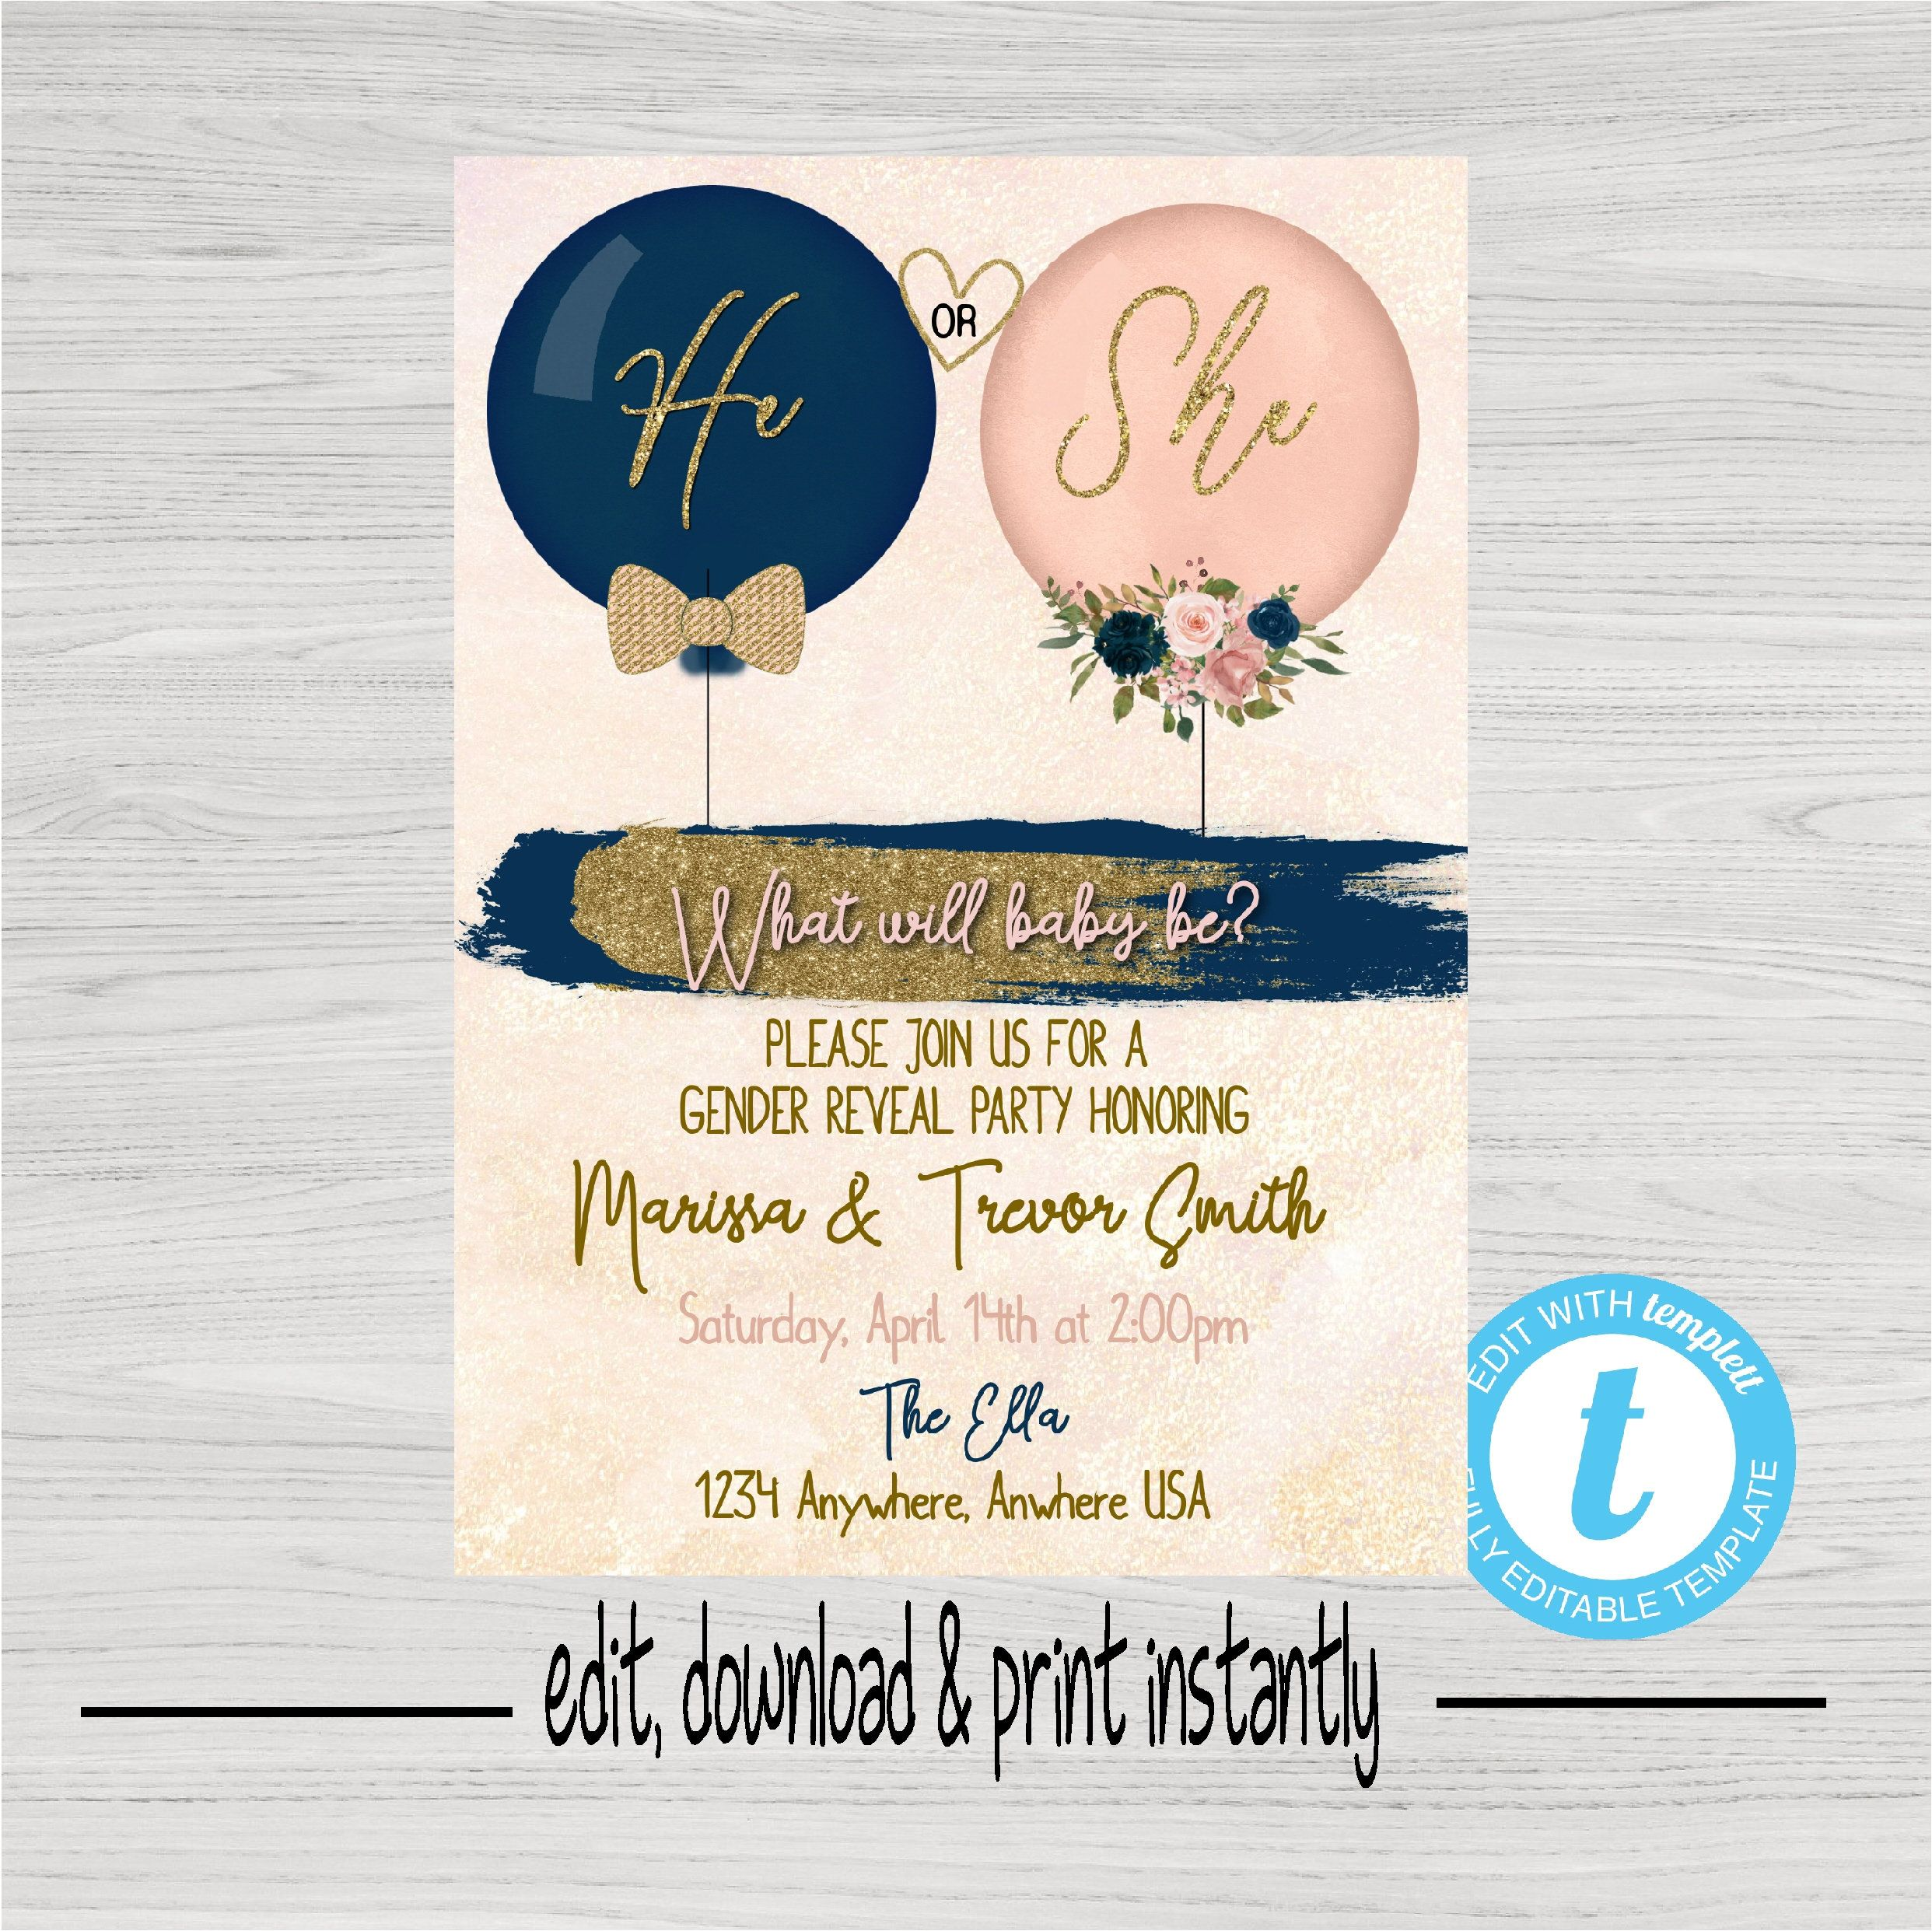 Gender Reveal Invitation Balloon Gender Reveal Blush Pink Navy Invite He Or She What Will Baby Be Baby Gender Reveal Instant Download In 2021 Gender Reveal Invitations Gender Reveal Balloons Gender